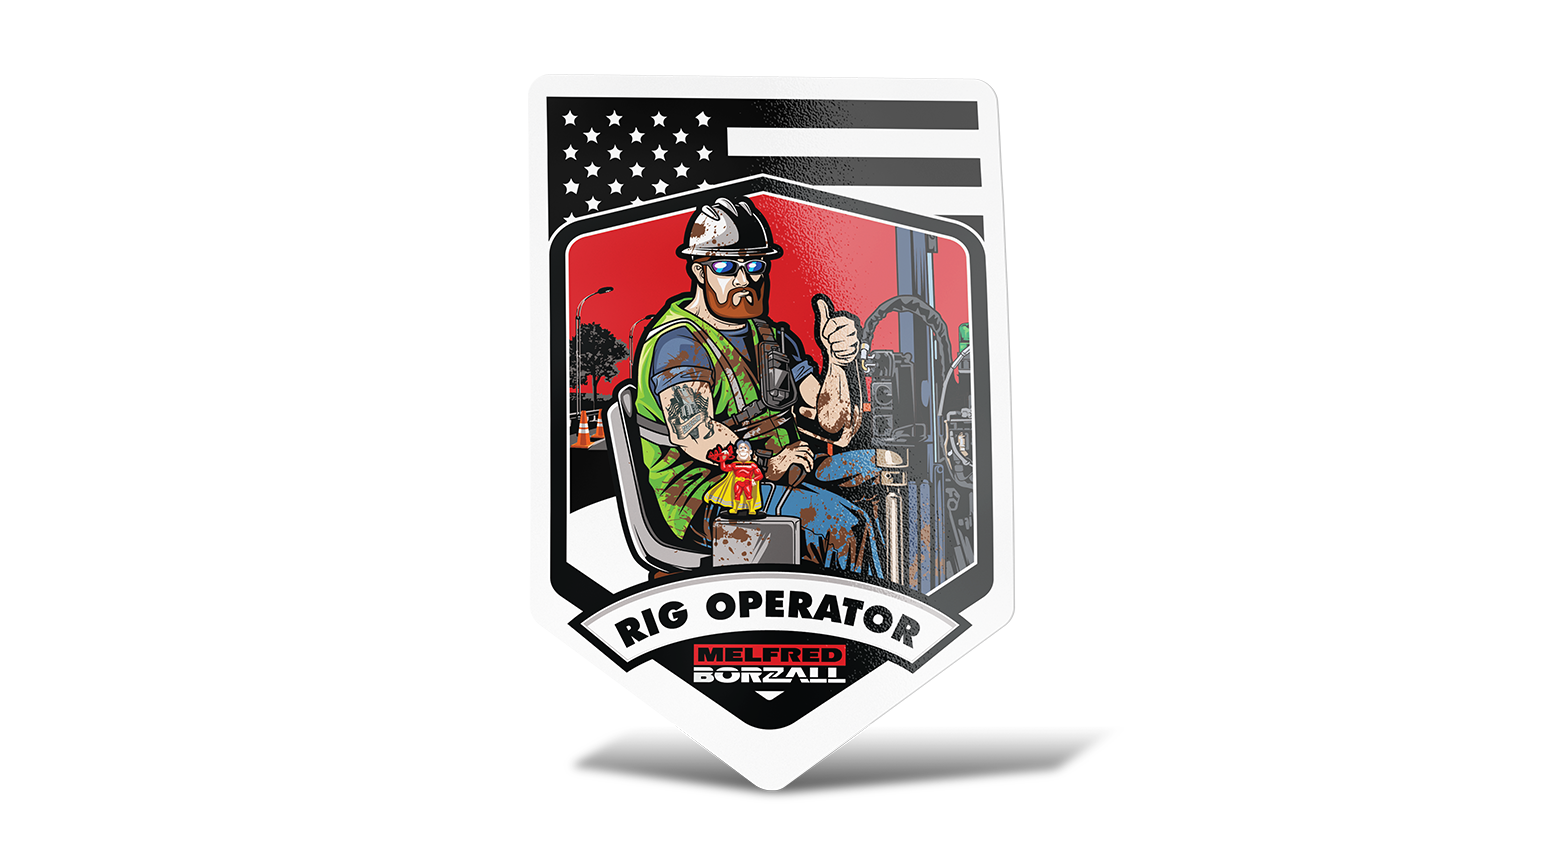 https://www.melfredborzall.com/media/forix/bannerslider/images/7/5/75-anniversary-vehicle-decals-rig-operator-pdp.png